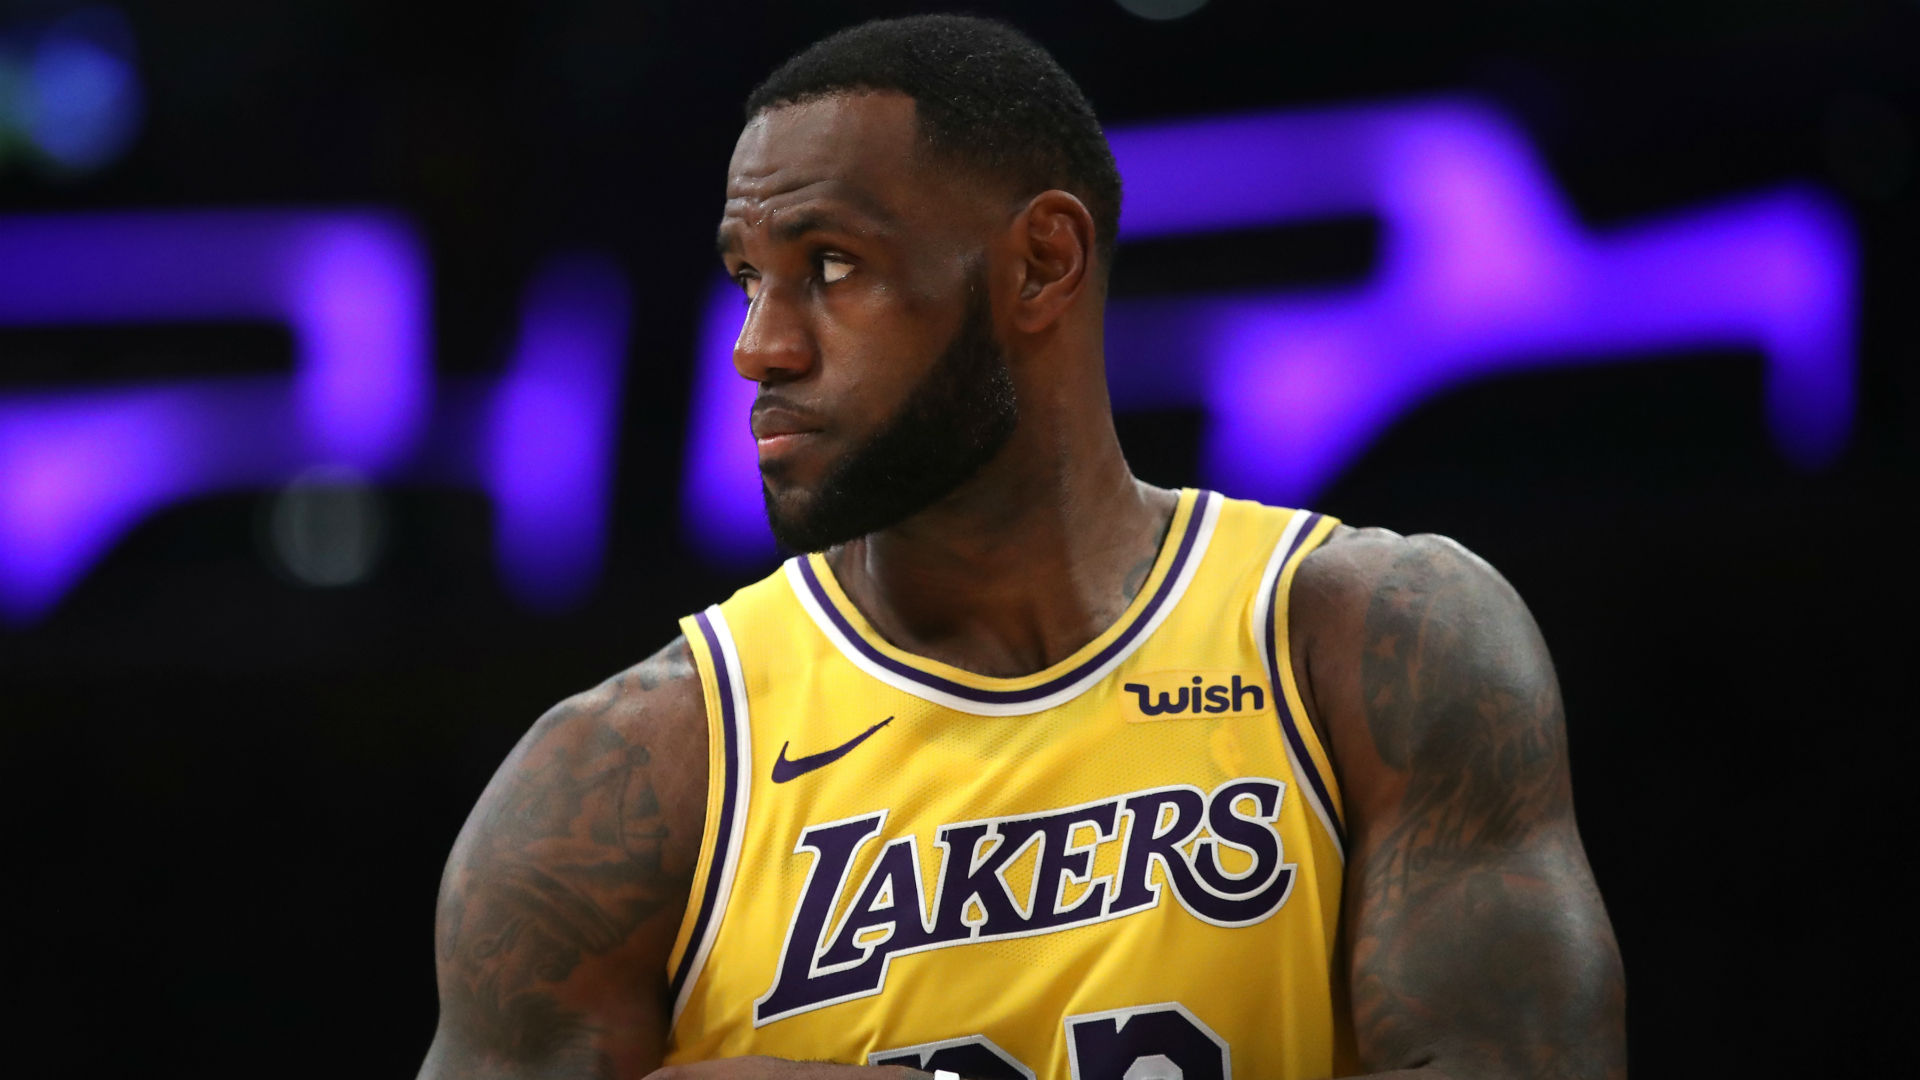 Can LeBron James break Kareem Abdul-Jabbar's scoring record?